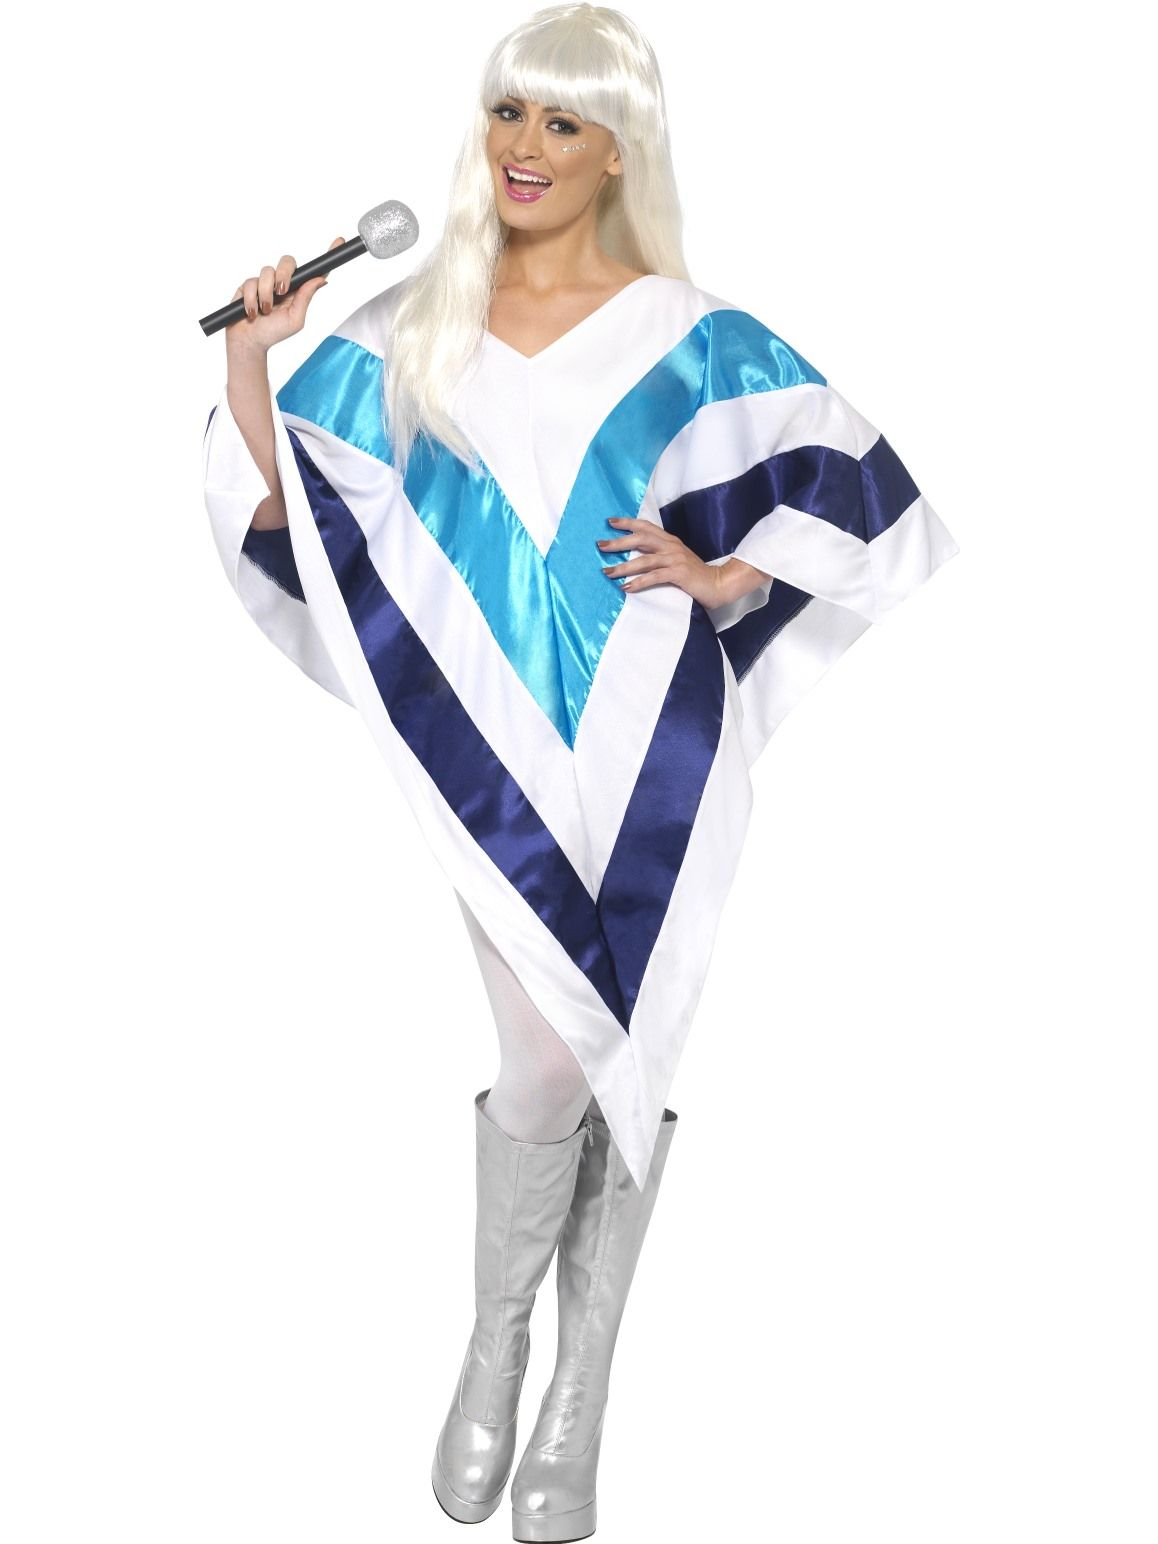 Abba Poncho 70s Costume - Buy Online Only